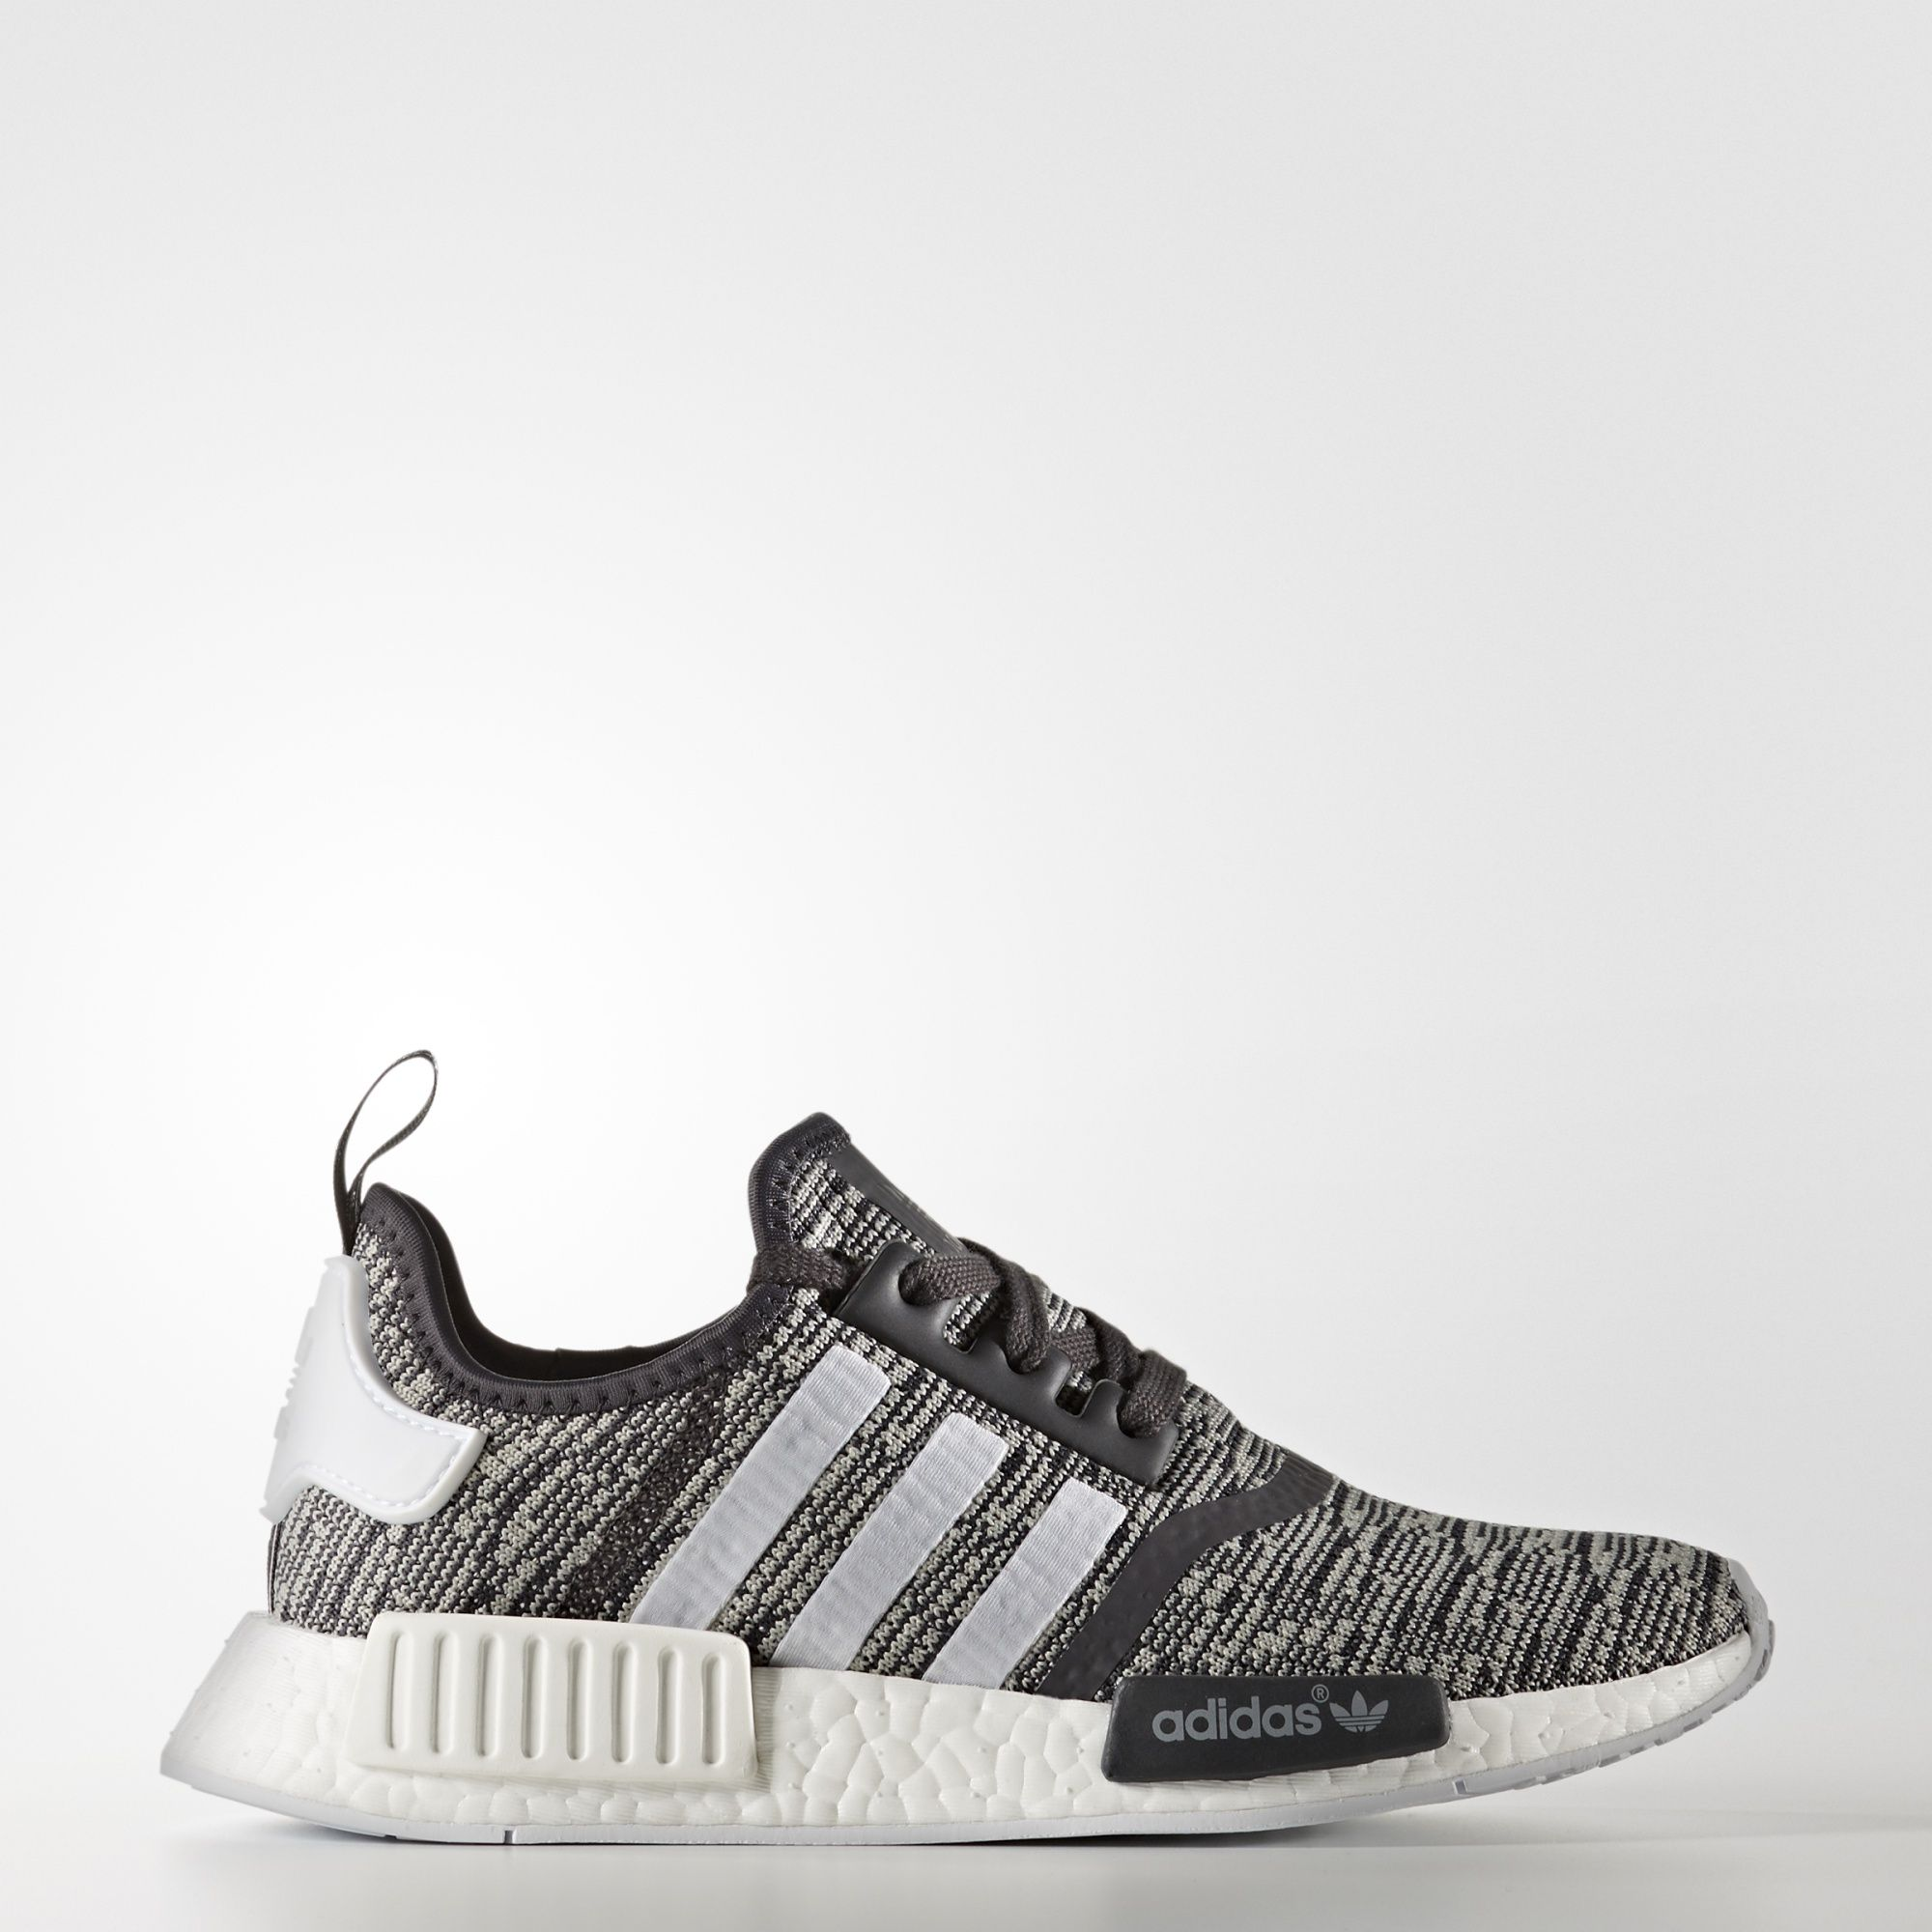 d4fbf4156 The adidas NMD Glitch Camo will release this December 2016 in a women s  exclusive size run featuring grey and black Primeknit.